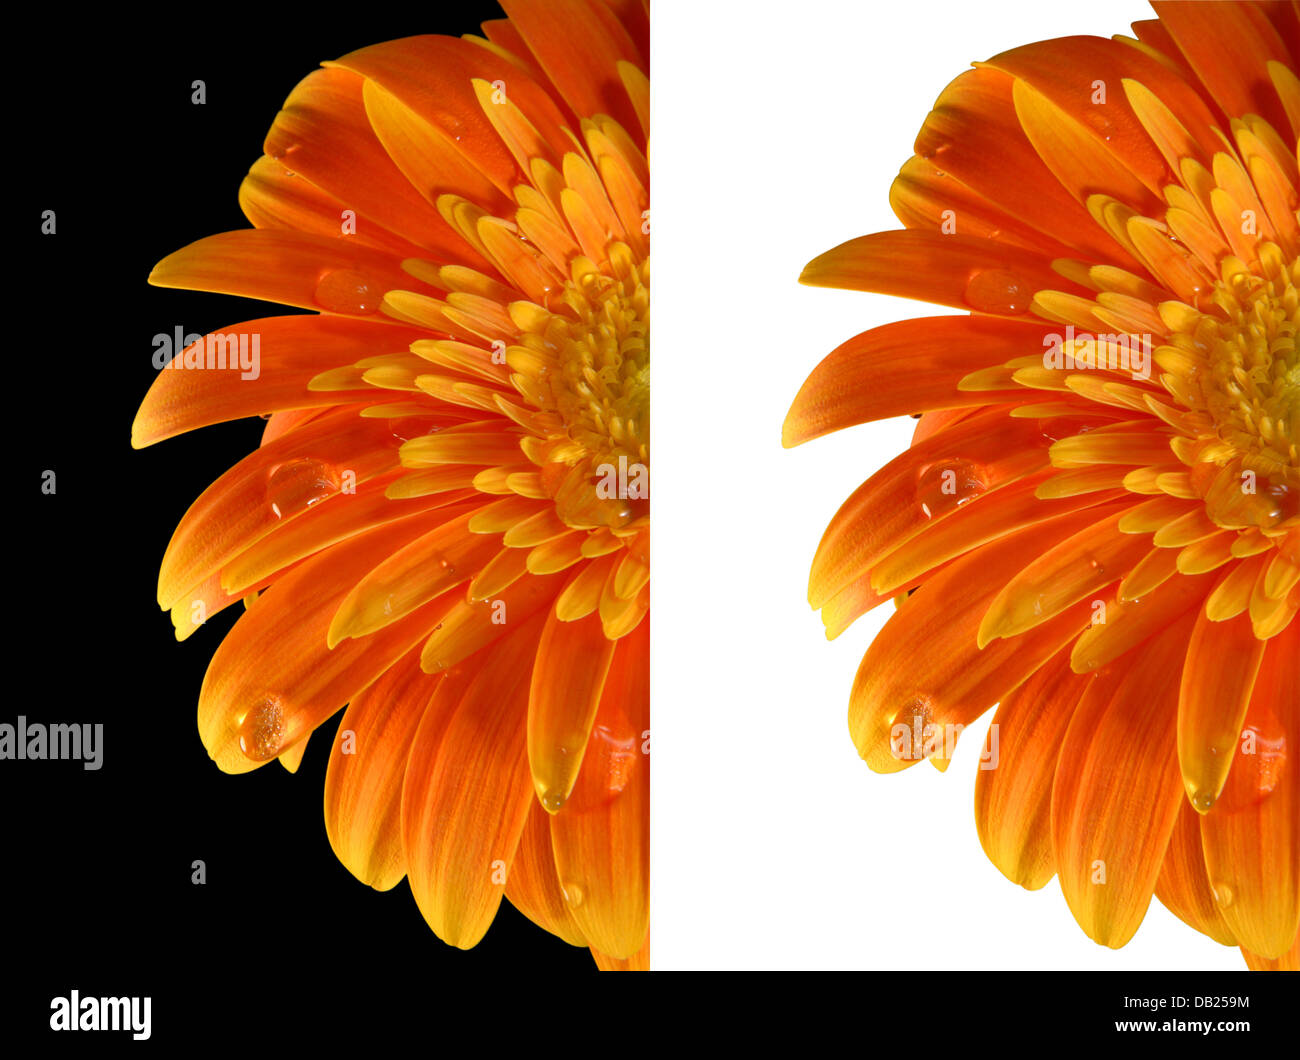 orangefarbene blume mit clippingpath isoliert stockfoto bild 58440416 alamy. Black Bedroom Furniture Sets. Home Design Ideas